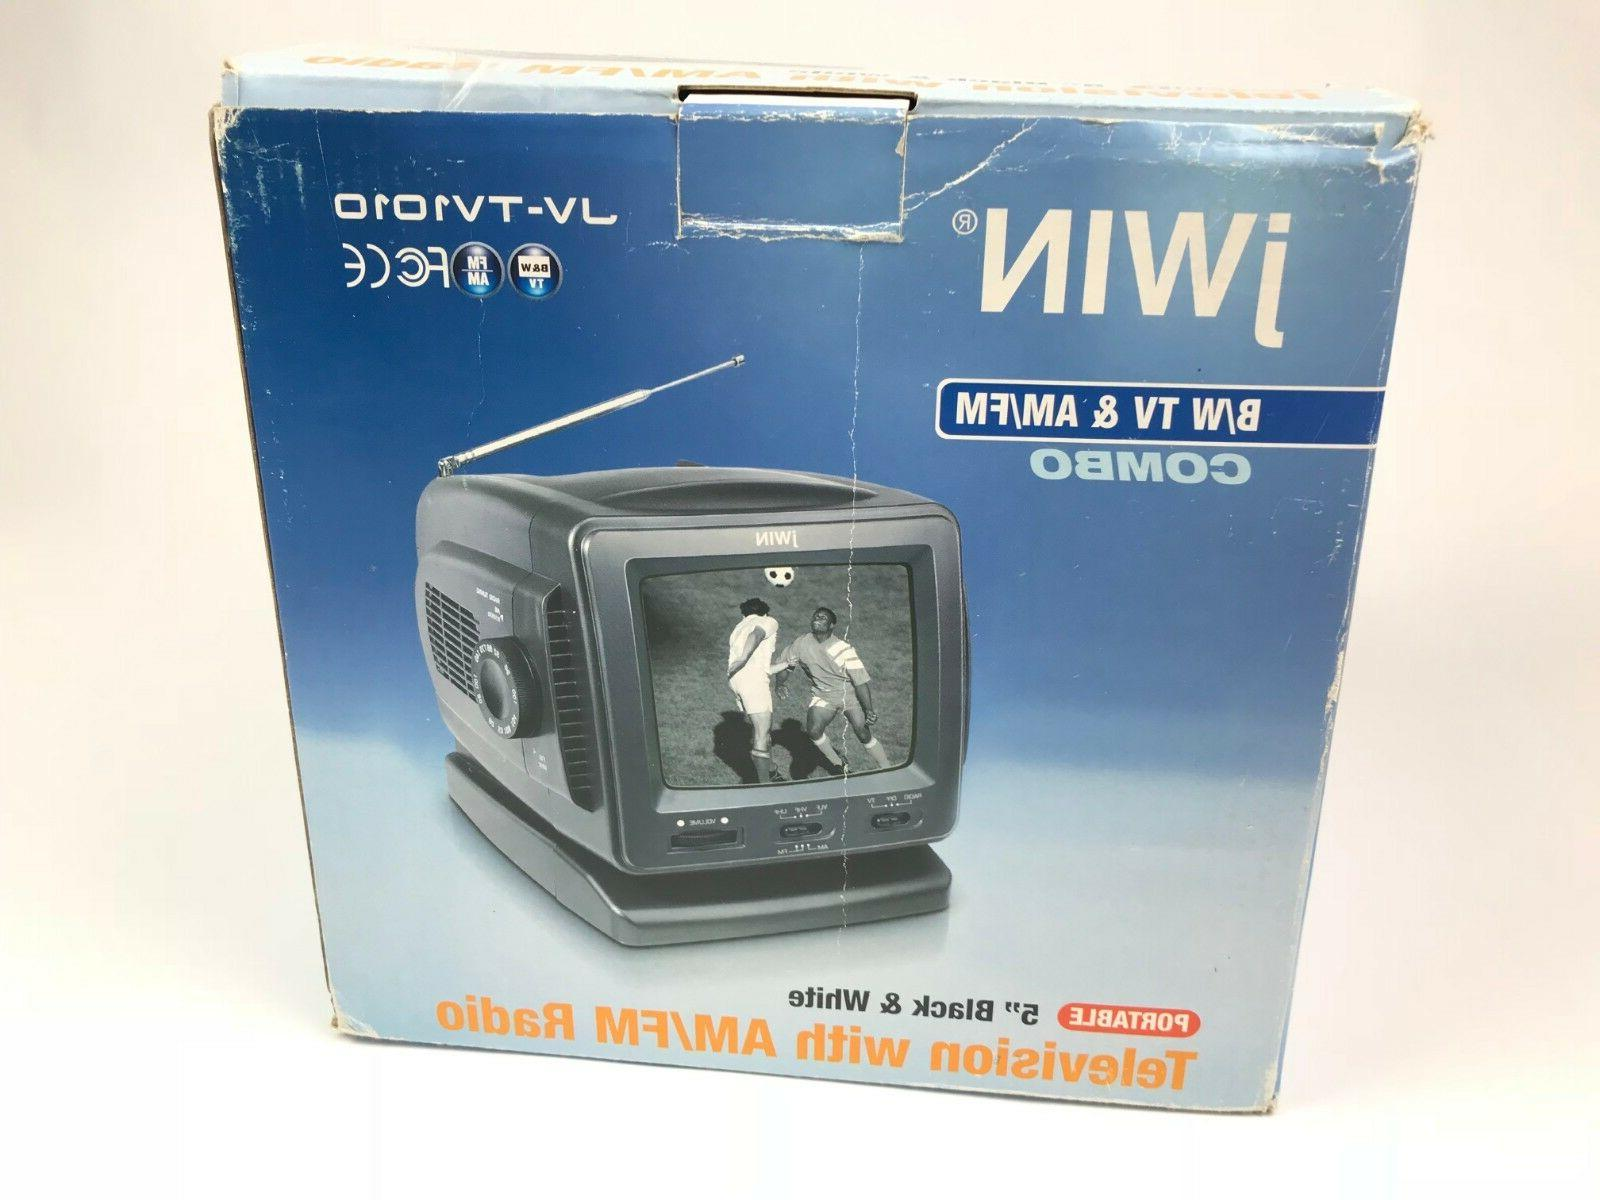 jWIN 5 Inch Analog Black White TV AM/FM Combo Portable